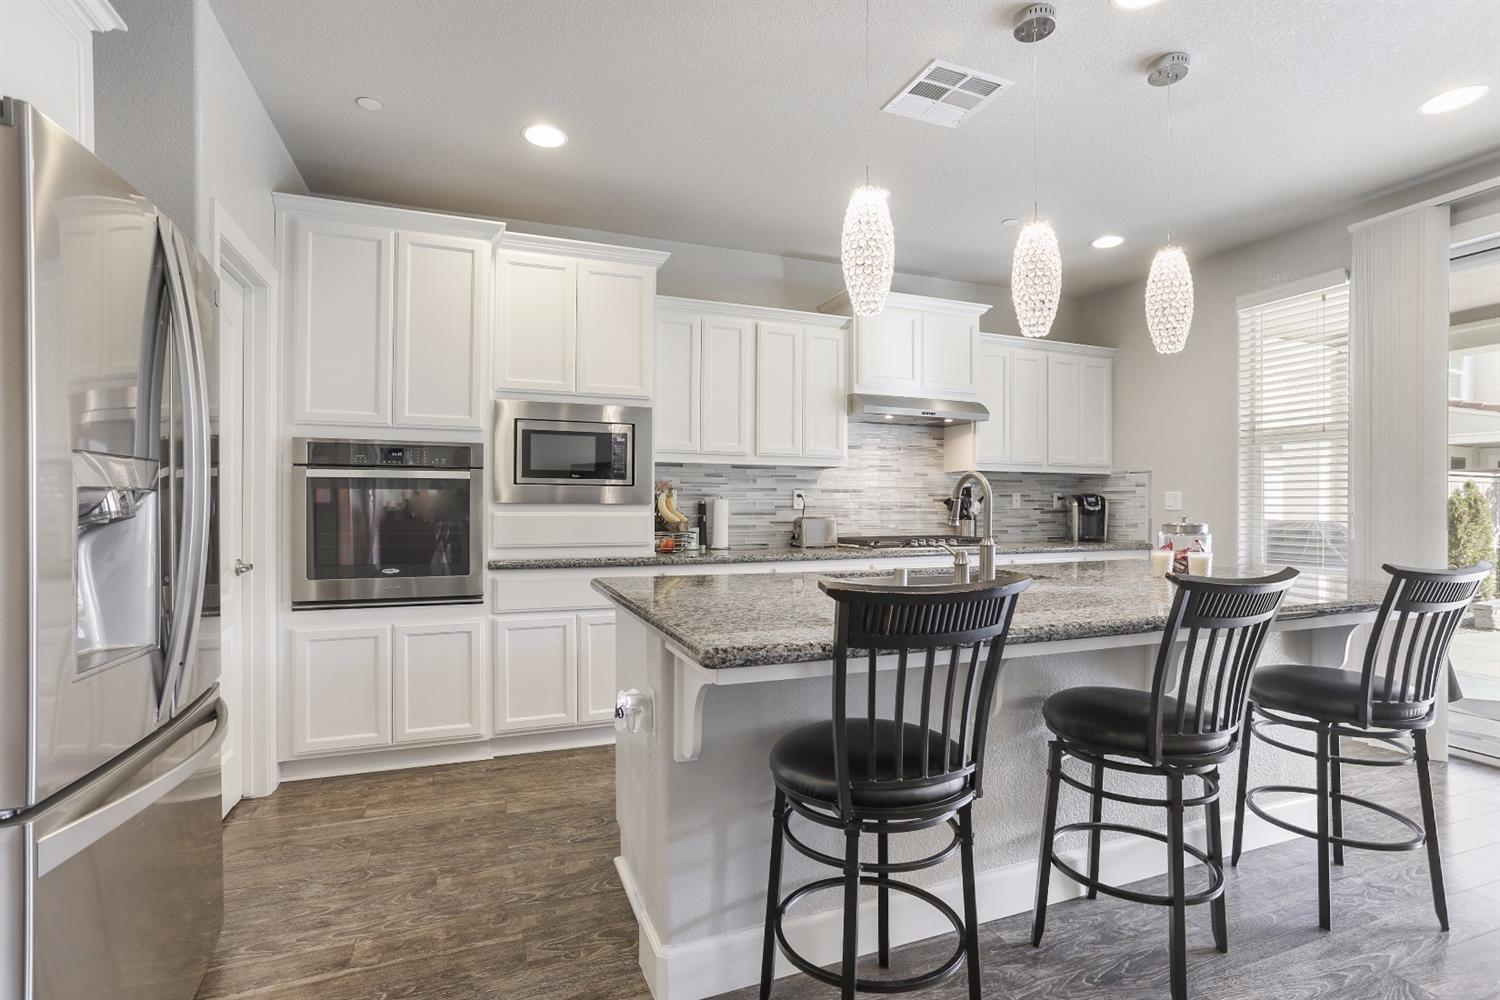 4 things to consider before you renovate your kitchen sherri patterson team sacramento real estate physician relocation